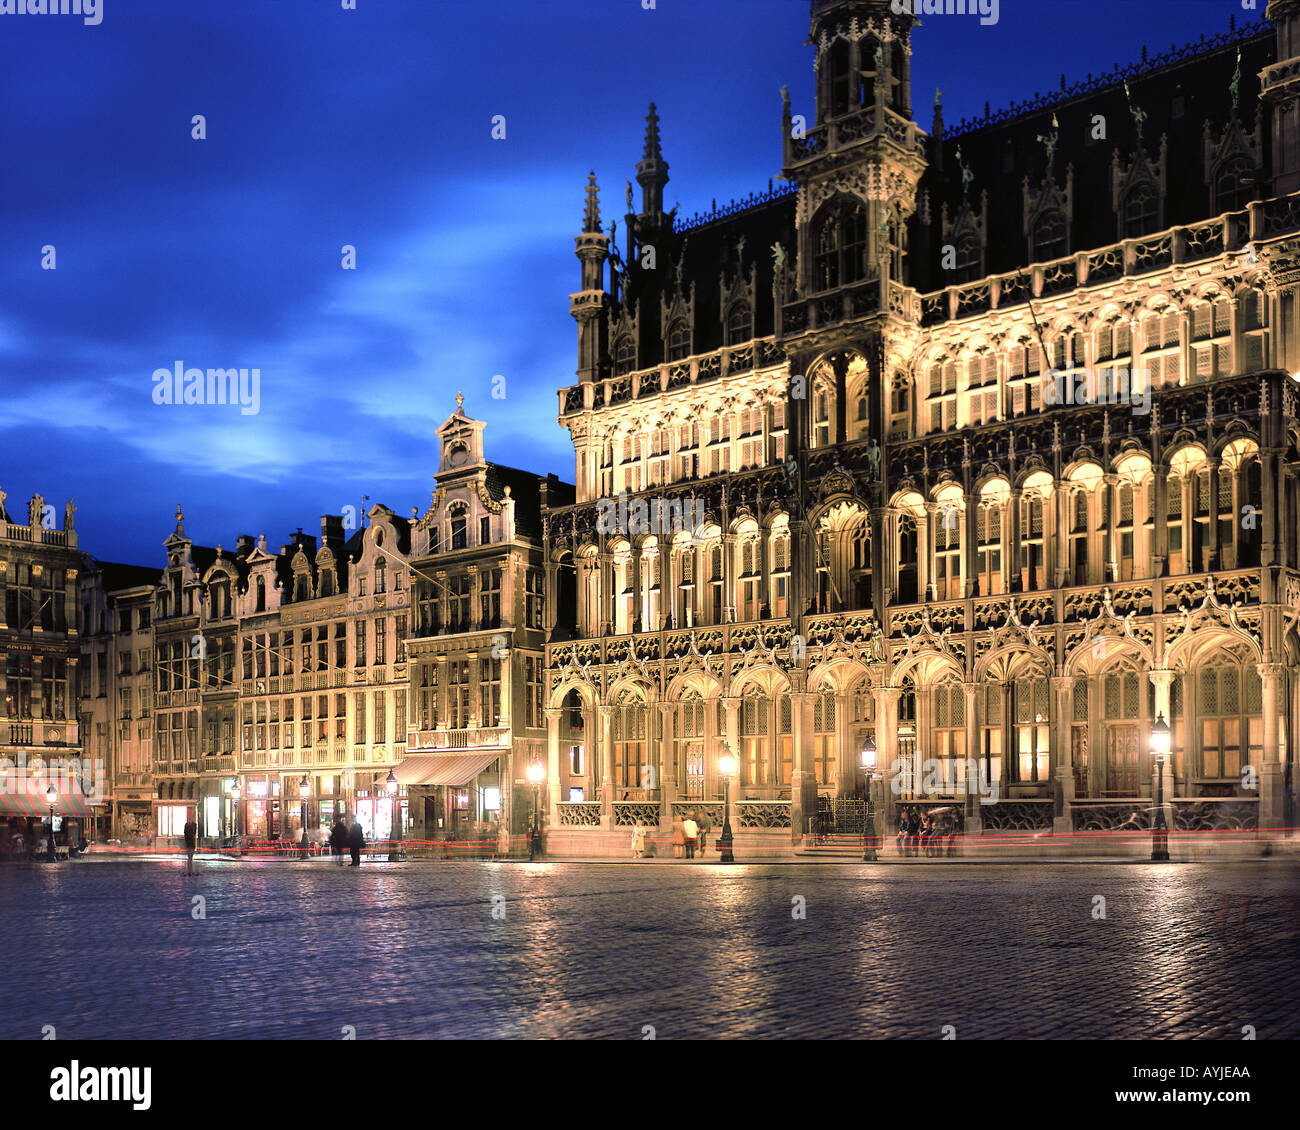 BE - BRUXELLES: Grand Place by night - Stock Image